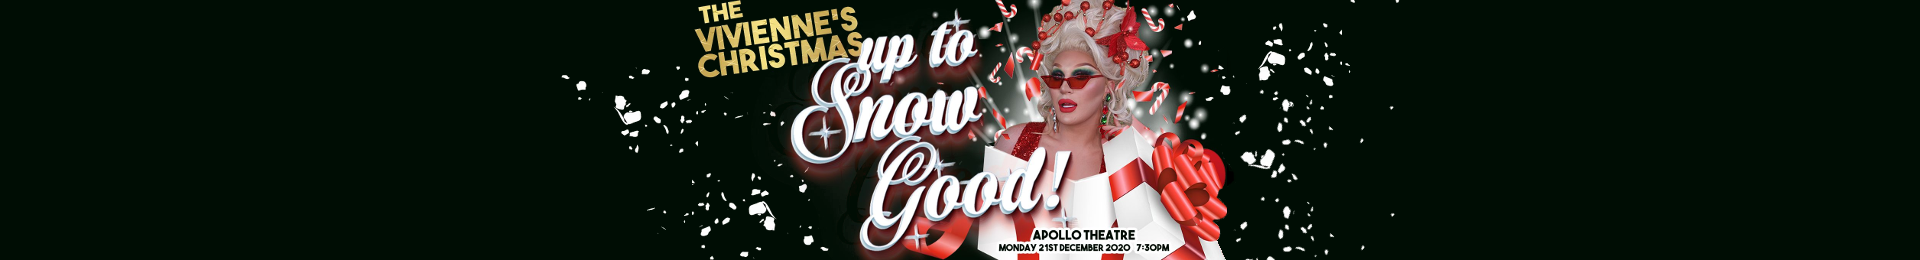 The Vivienne's Christmas: Up to Snow Good banner image